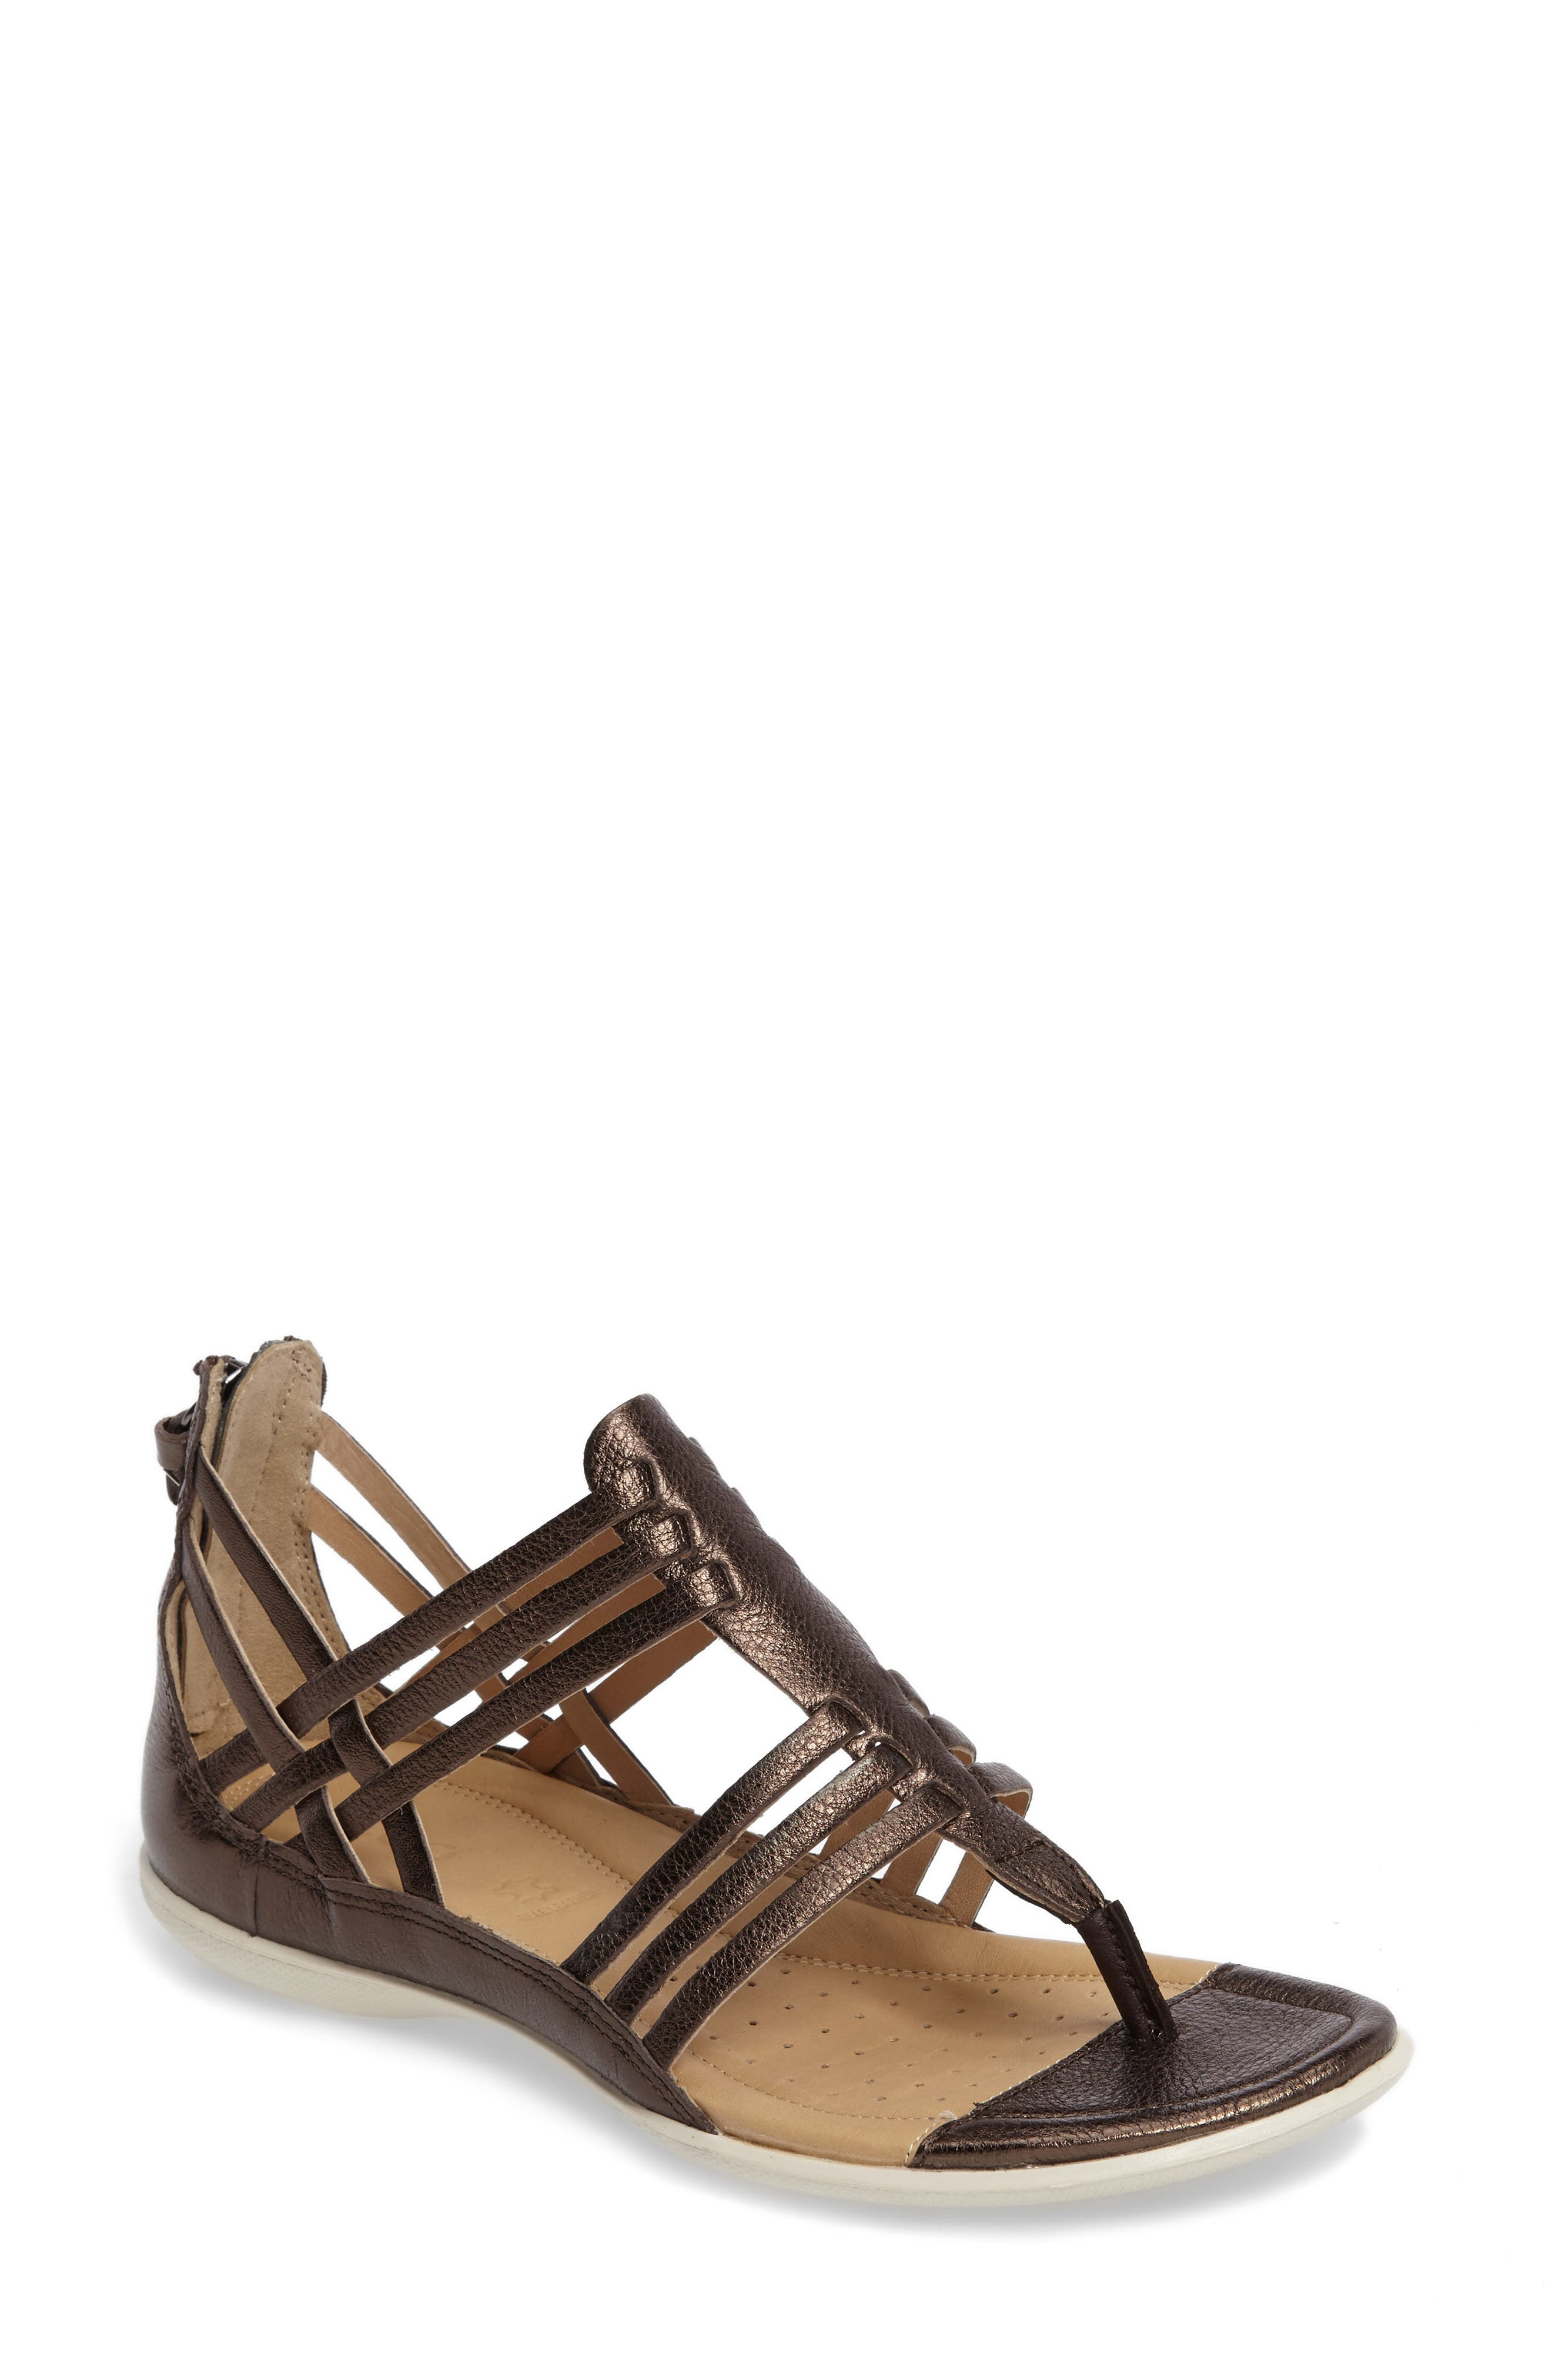 Flash Sandal,                         Main,                         color, Licorice Leather